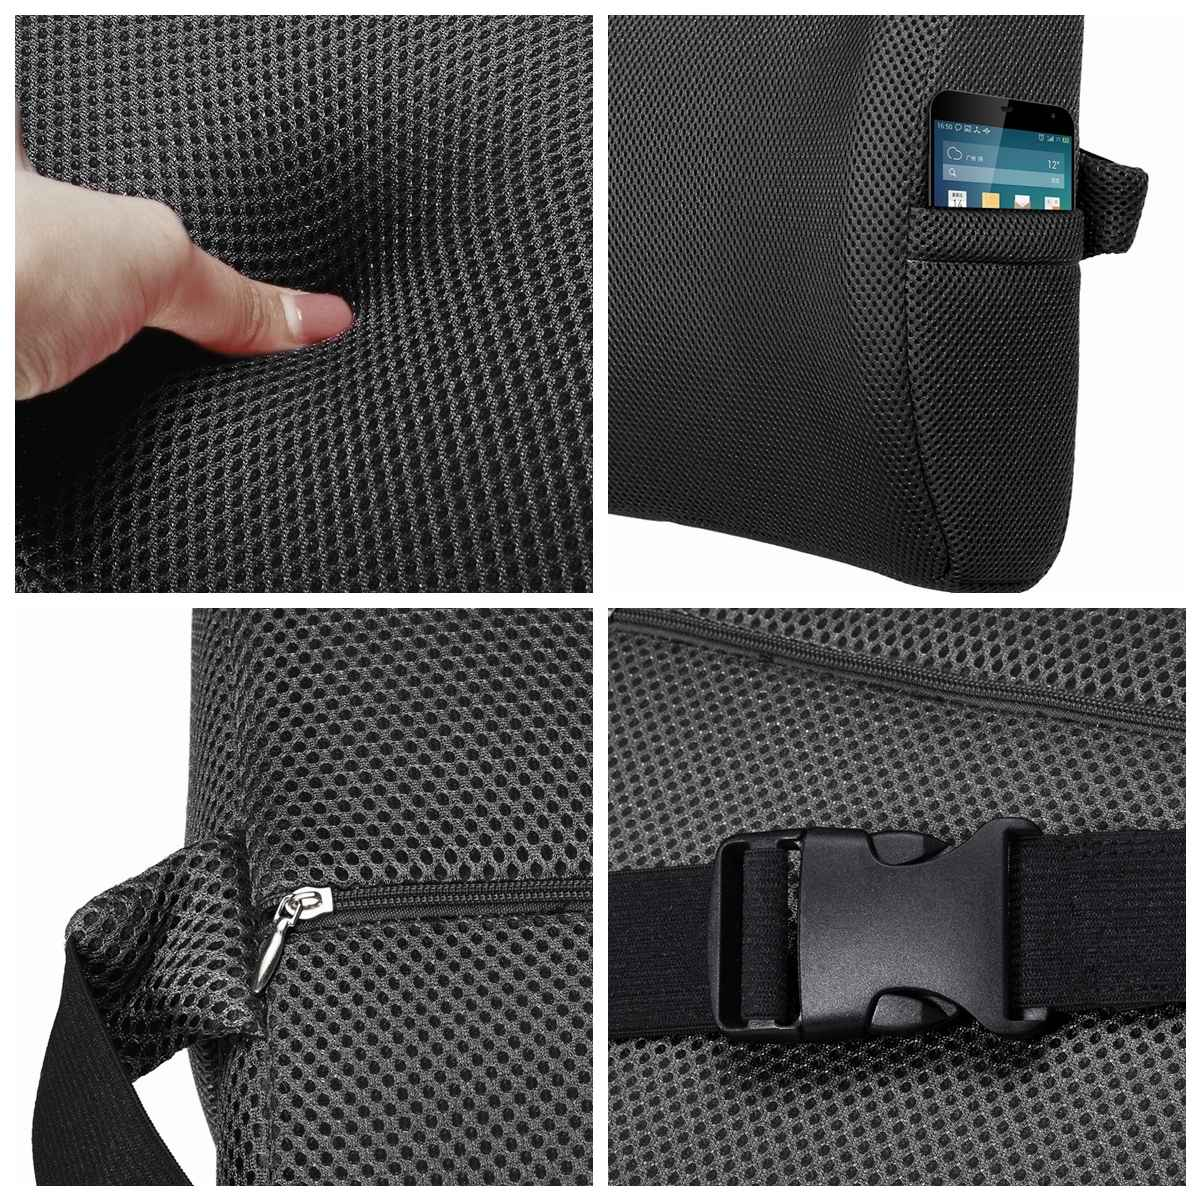 6 Color Lumbar Pillows Made Of Soft Foam For Car Seat To Support And Relieve Back Pain 13